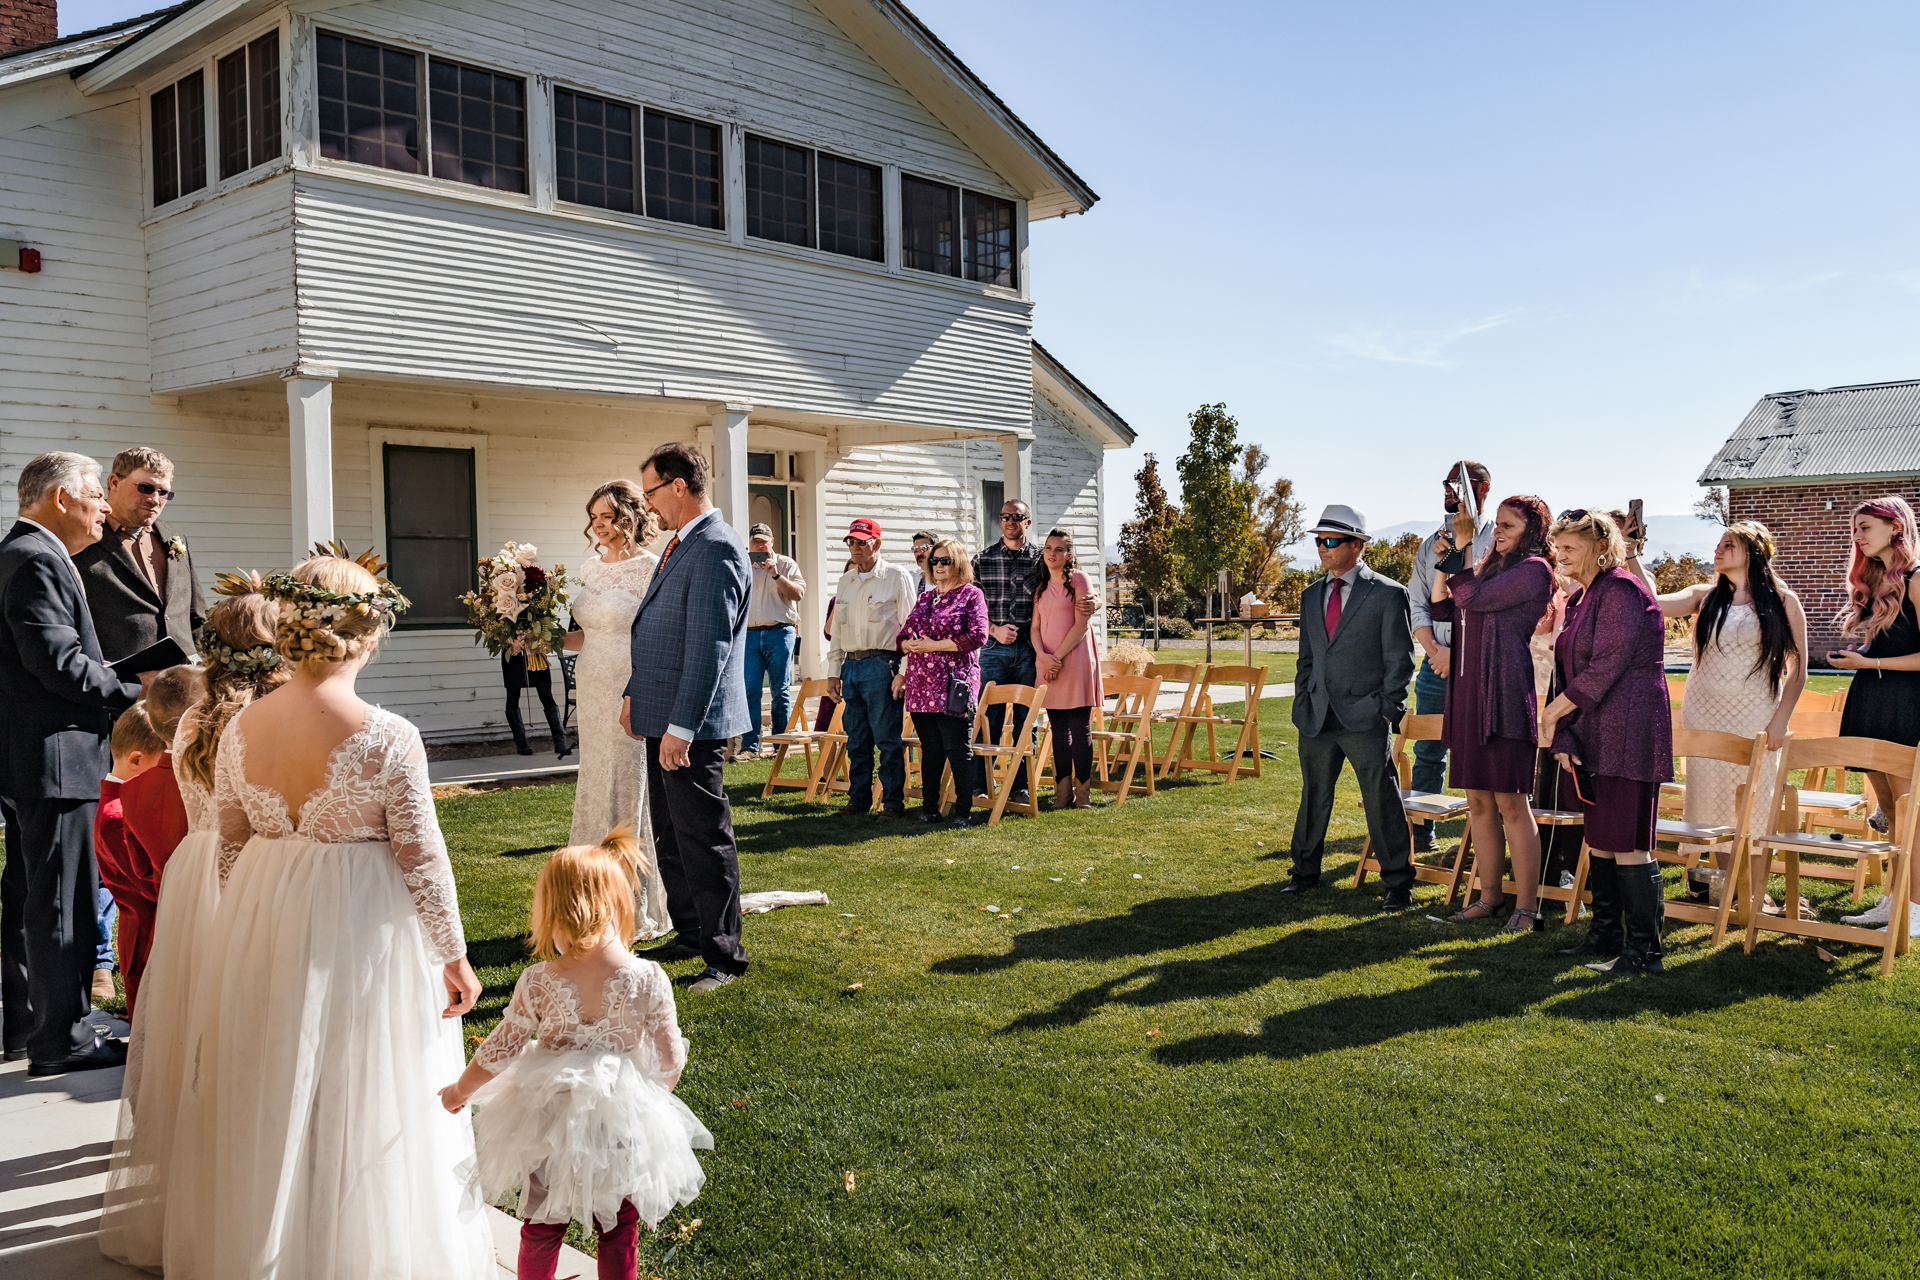 Dangberg Home Ranch Wedding Photographer | The brides father gives his blessing for them to be married.